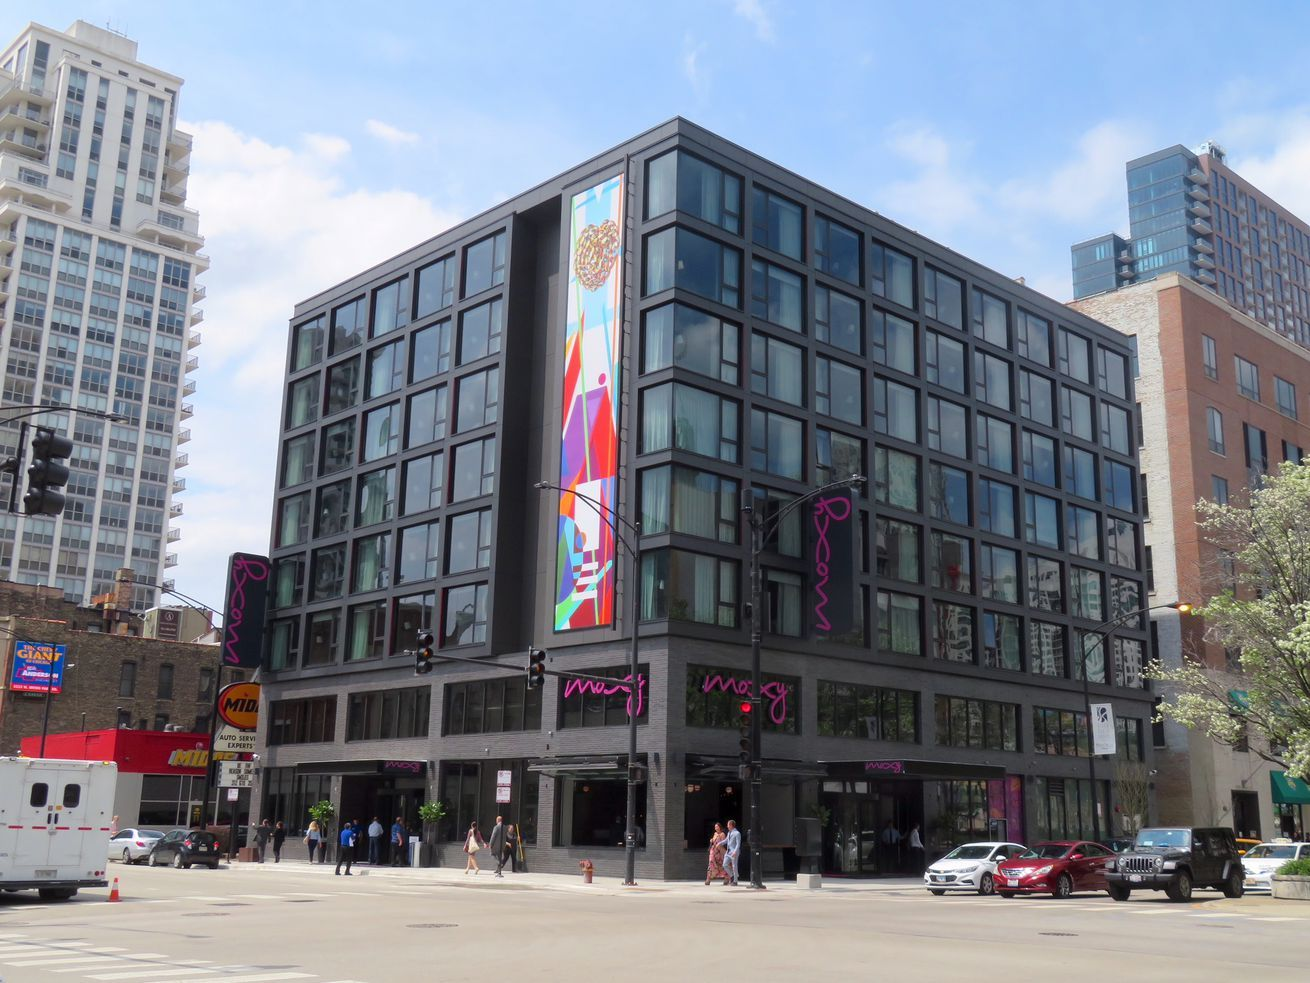 Millennialfocused moxy hotel opens in river north river